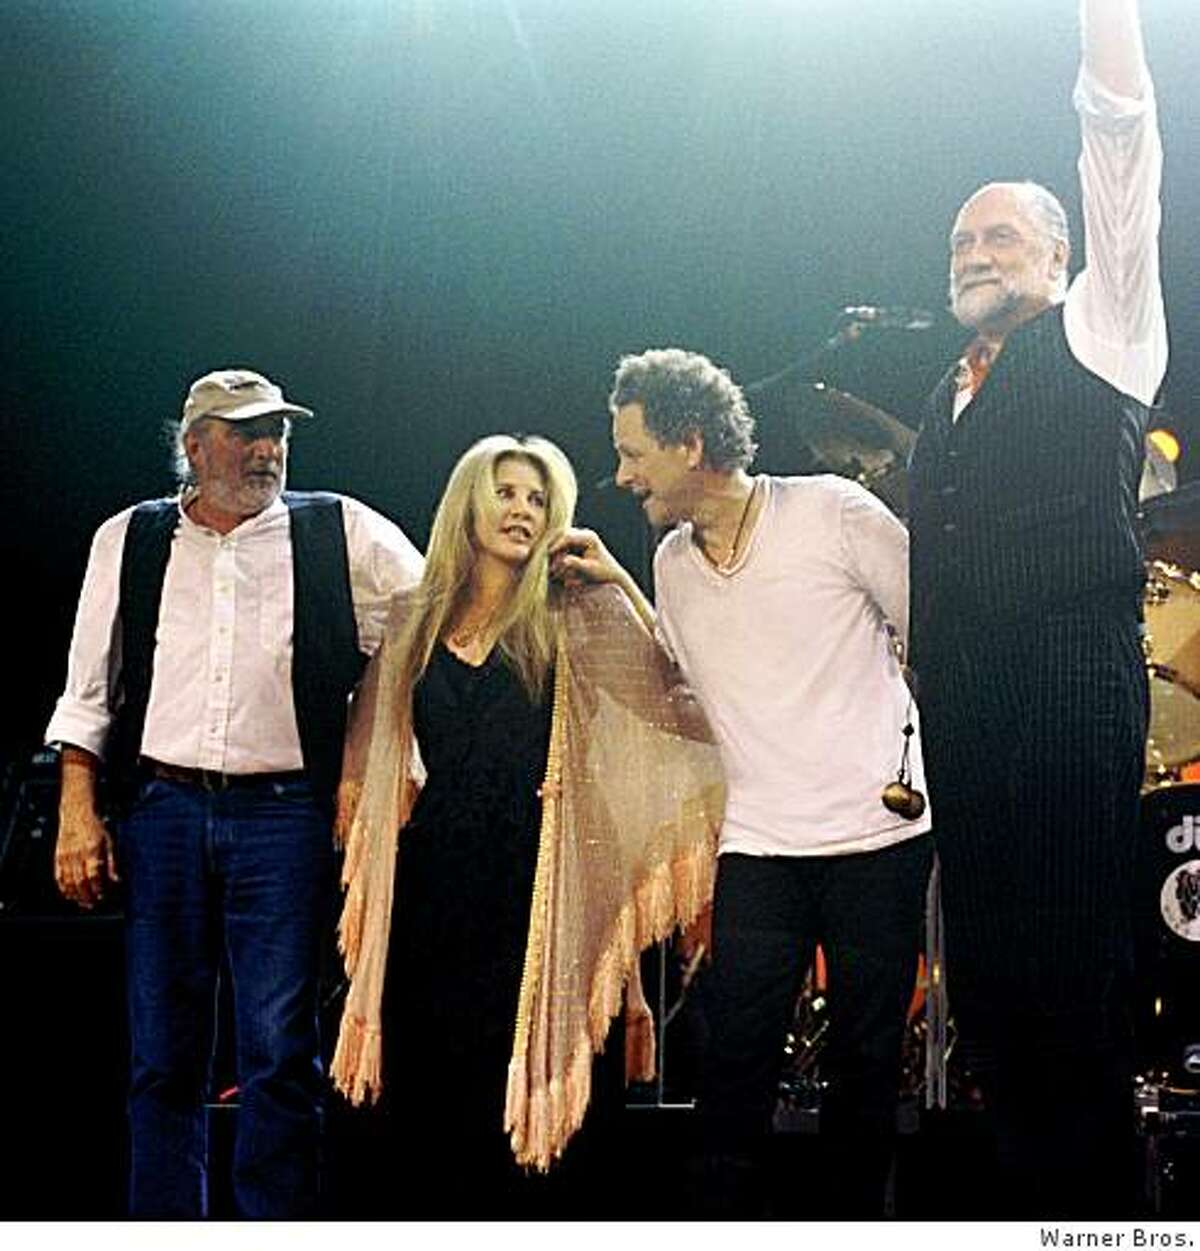 Fleetwood Mac is touring without a new album for the first time in years.